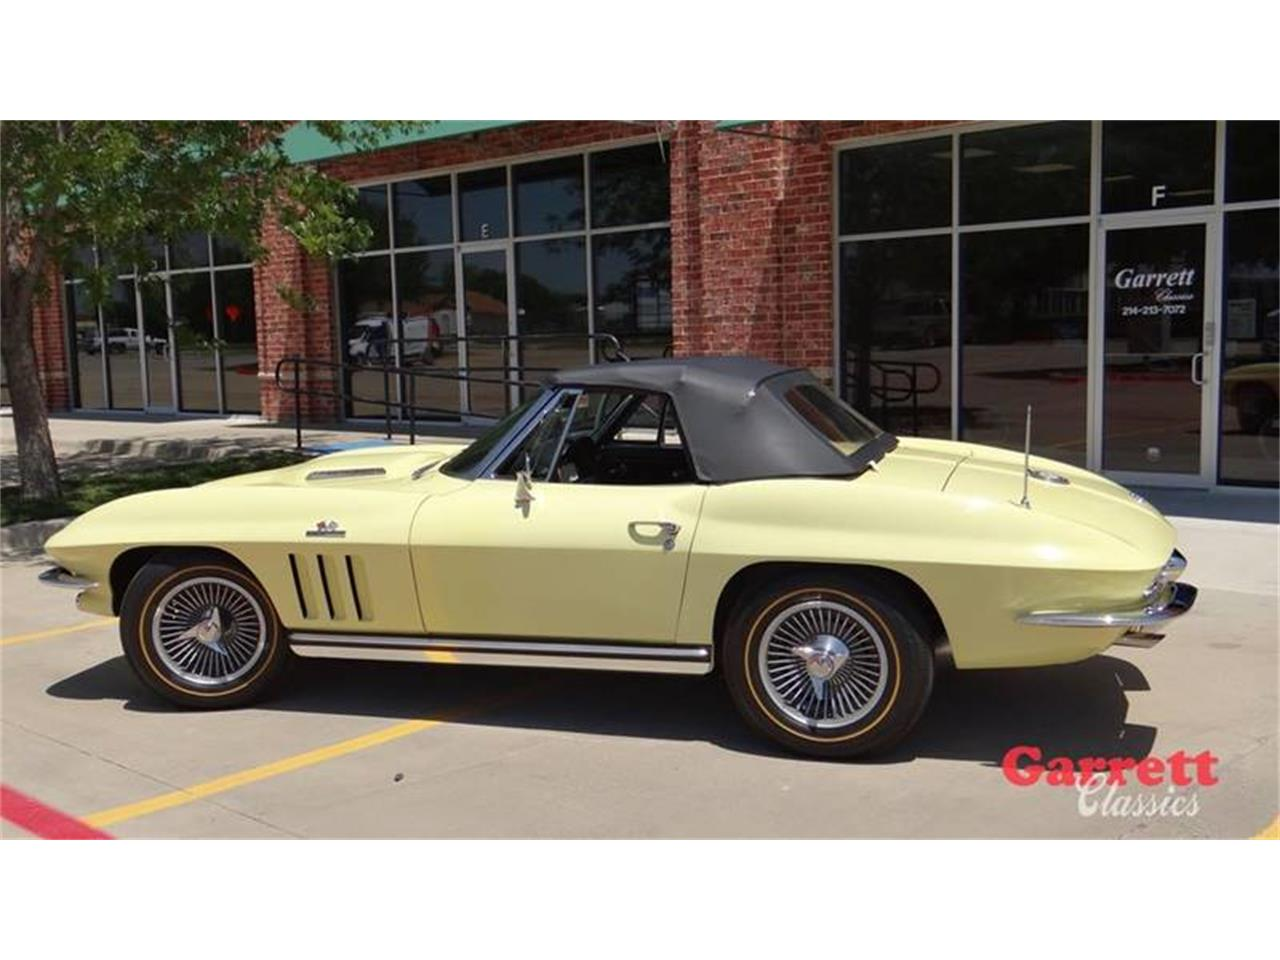 Large Picture of 1965 Chevrolet Corvette - $95,000.00 Offered by Garrett Classics - OMKM